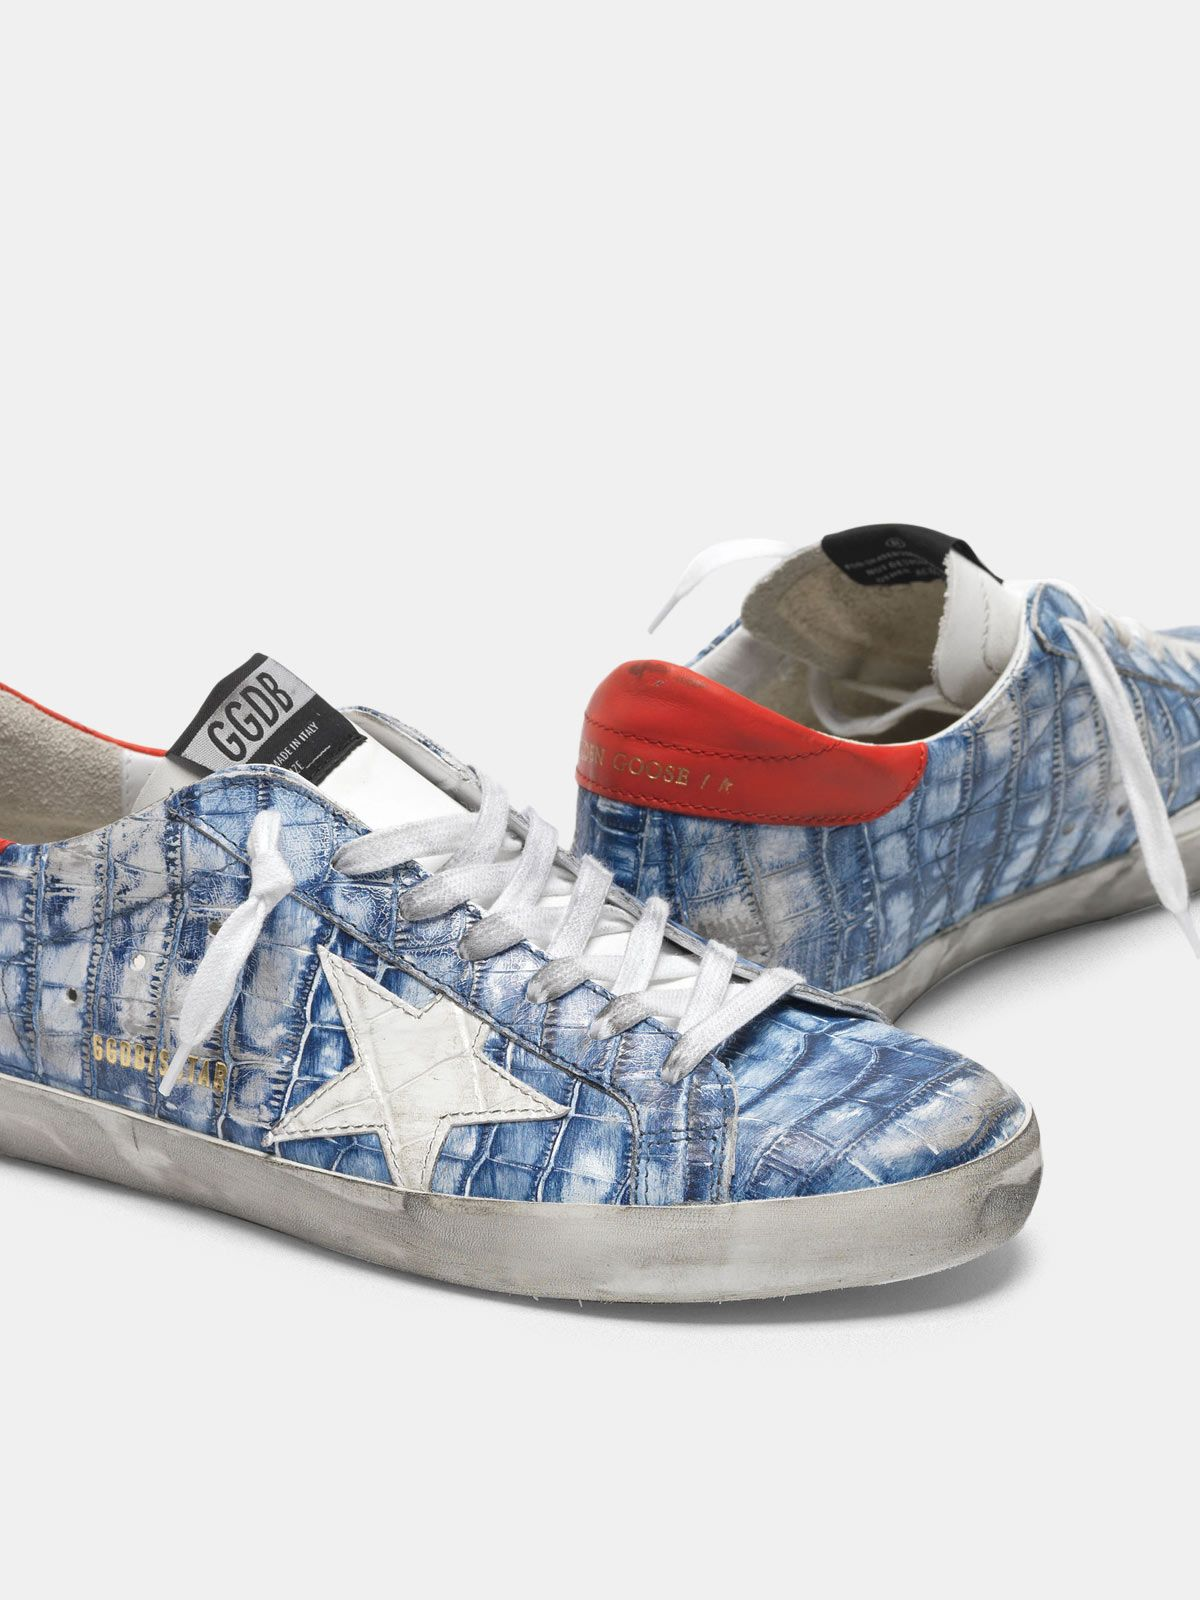 Golden Goose - Sneakers Superstar blu in pelle stampa cocco in